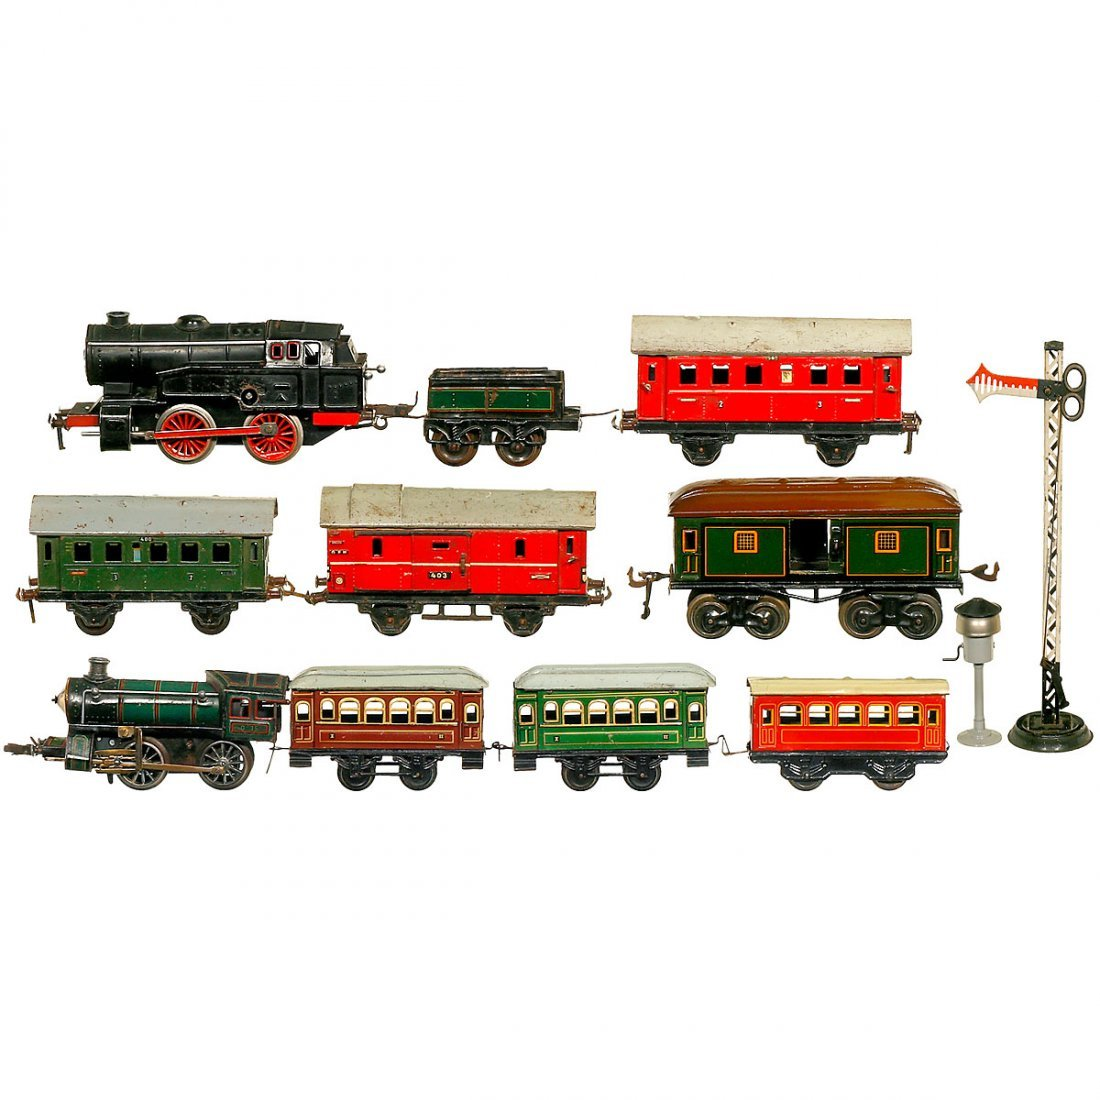 Group of Toy Trains Gauge 0, c. 1950